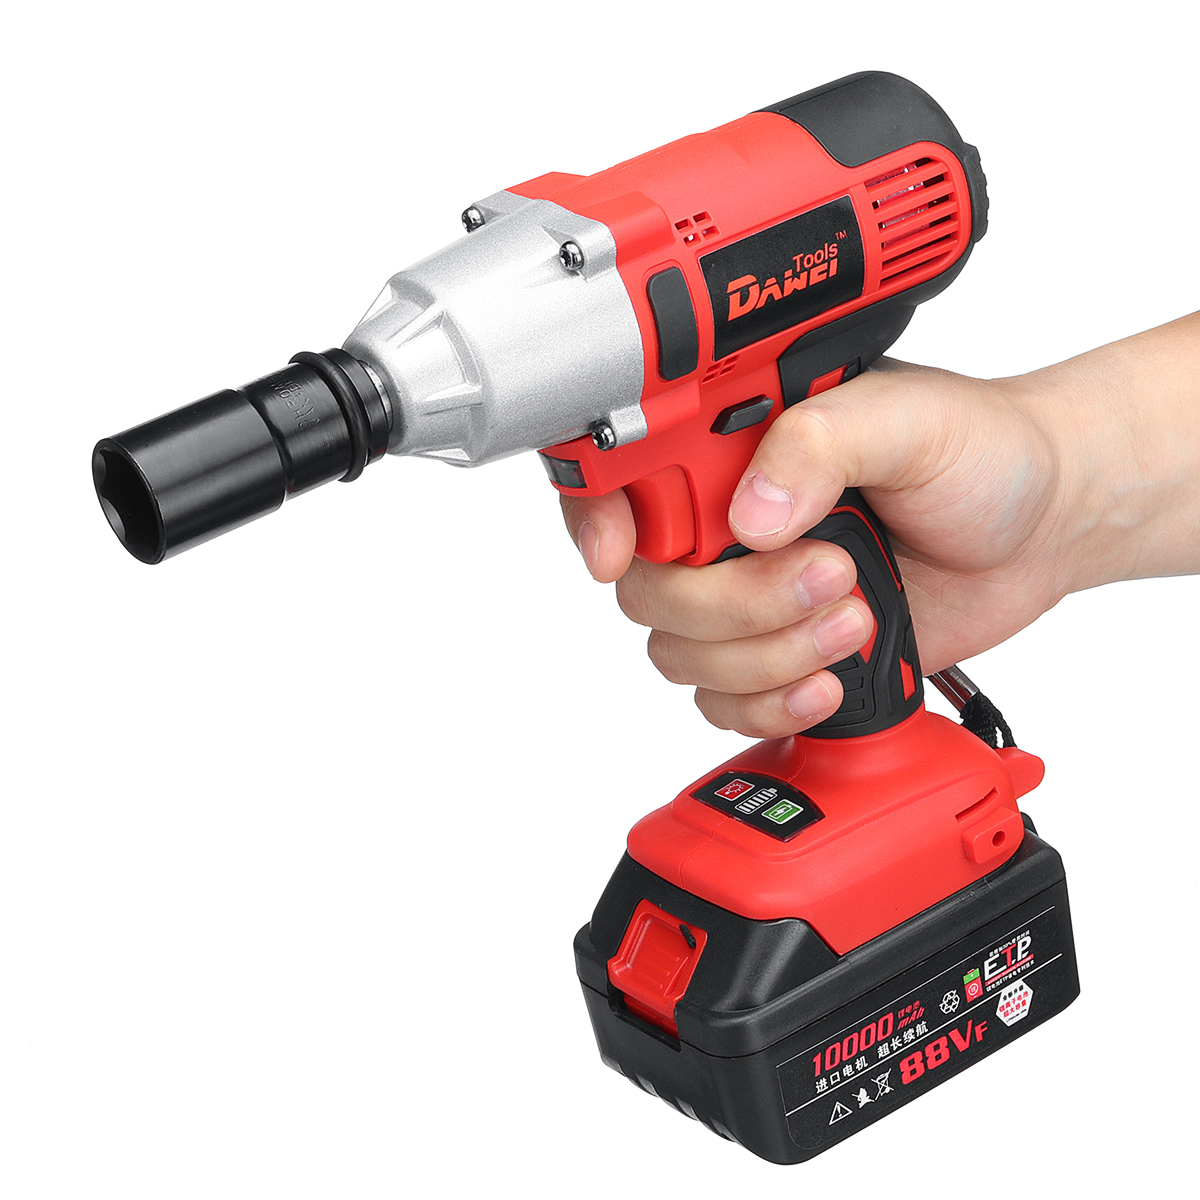 21V Li-ion Electric Impact Wrench Cordless High Torque Power Wrench with 2 Battery